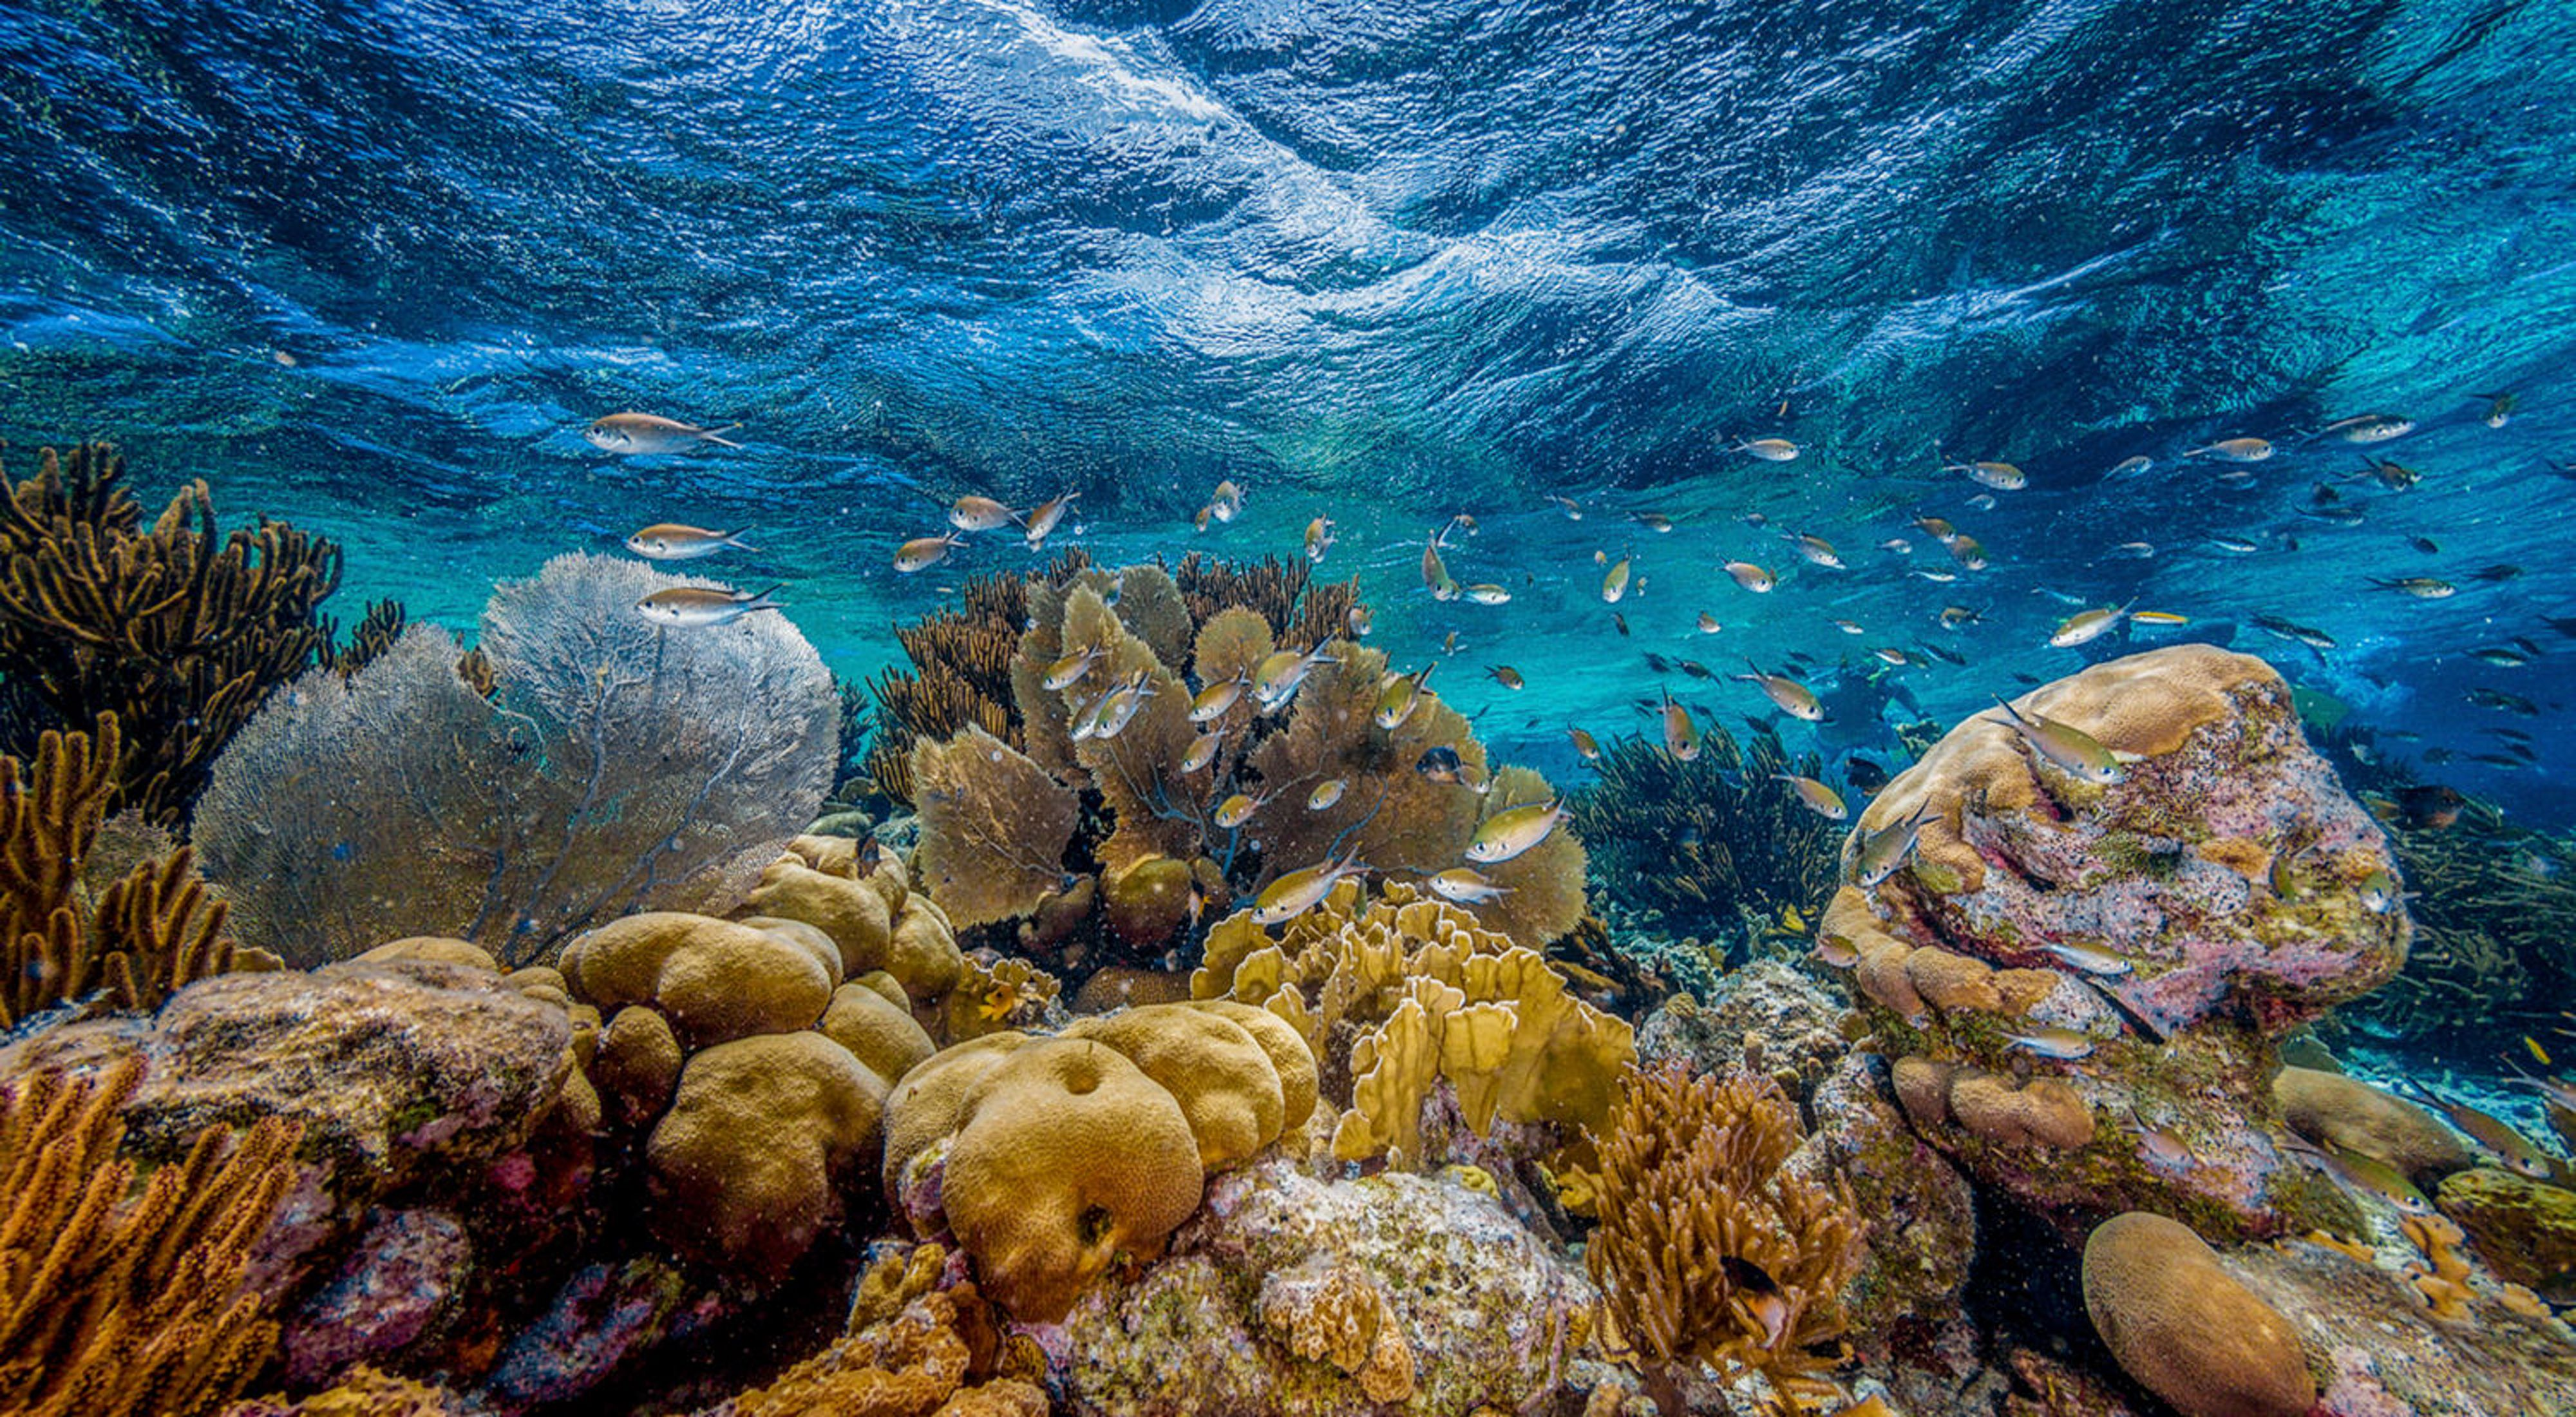 A coral reef in shallow water off of the Dutch island municipality of Bonaire in the southern Caribbean. This photo was entered into TNC's 2019 Photo Contest.